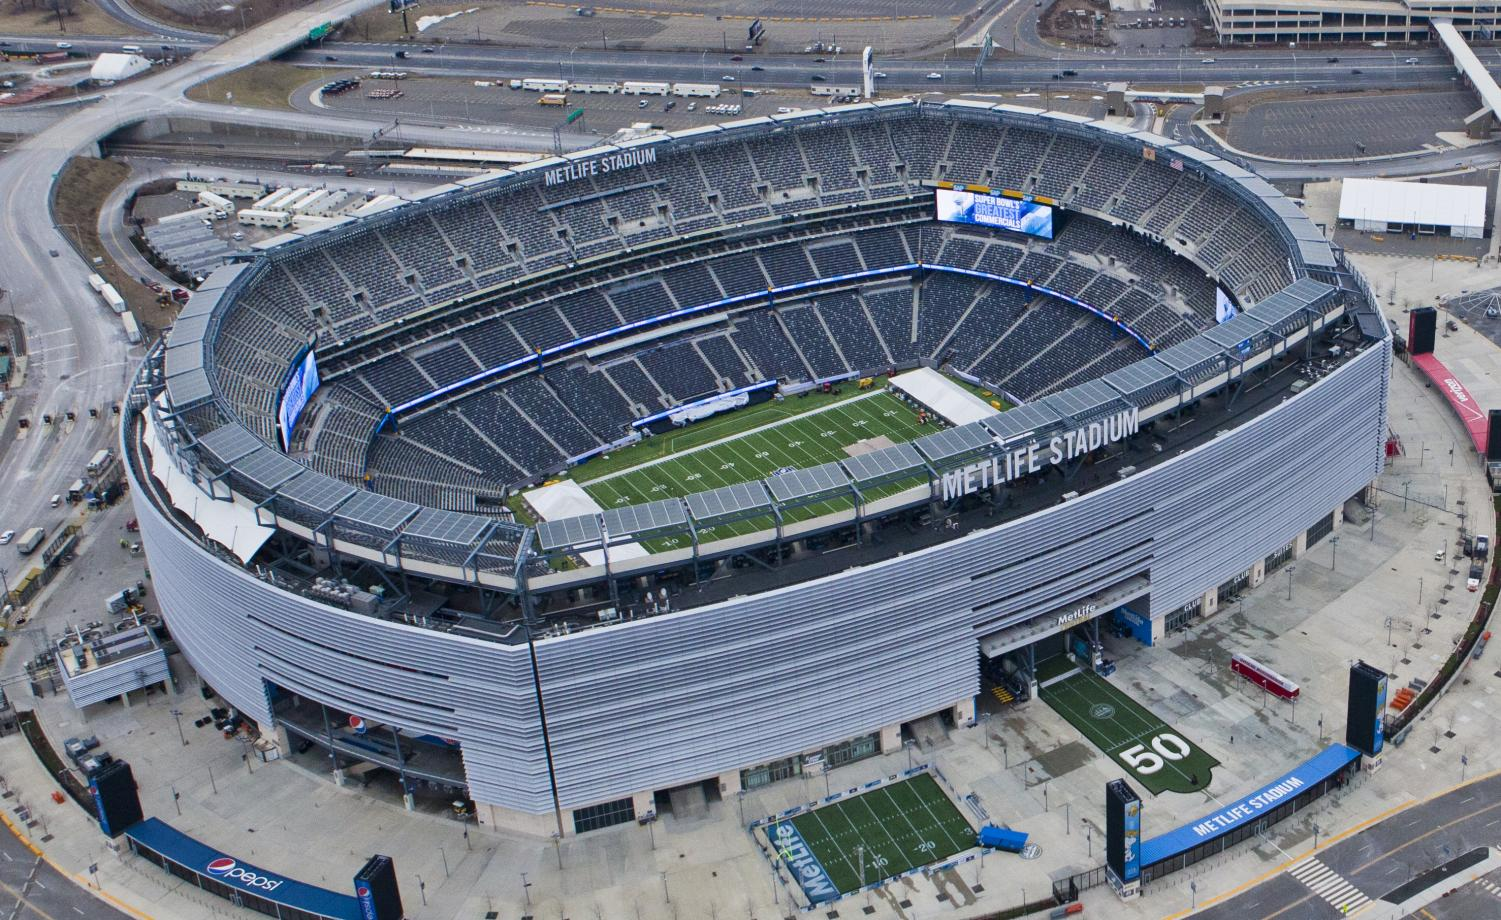 Metlife Stadium, home of the Jets and the Giants